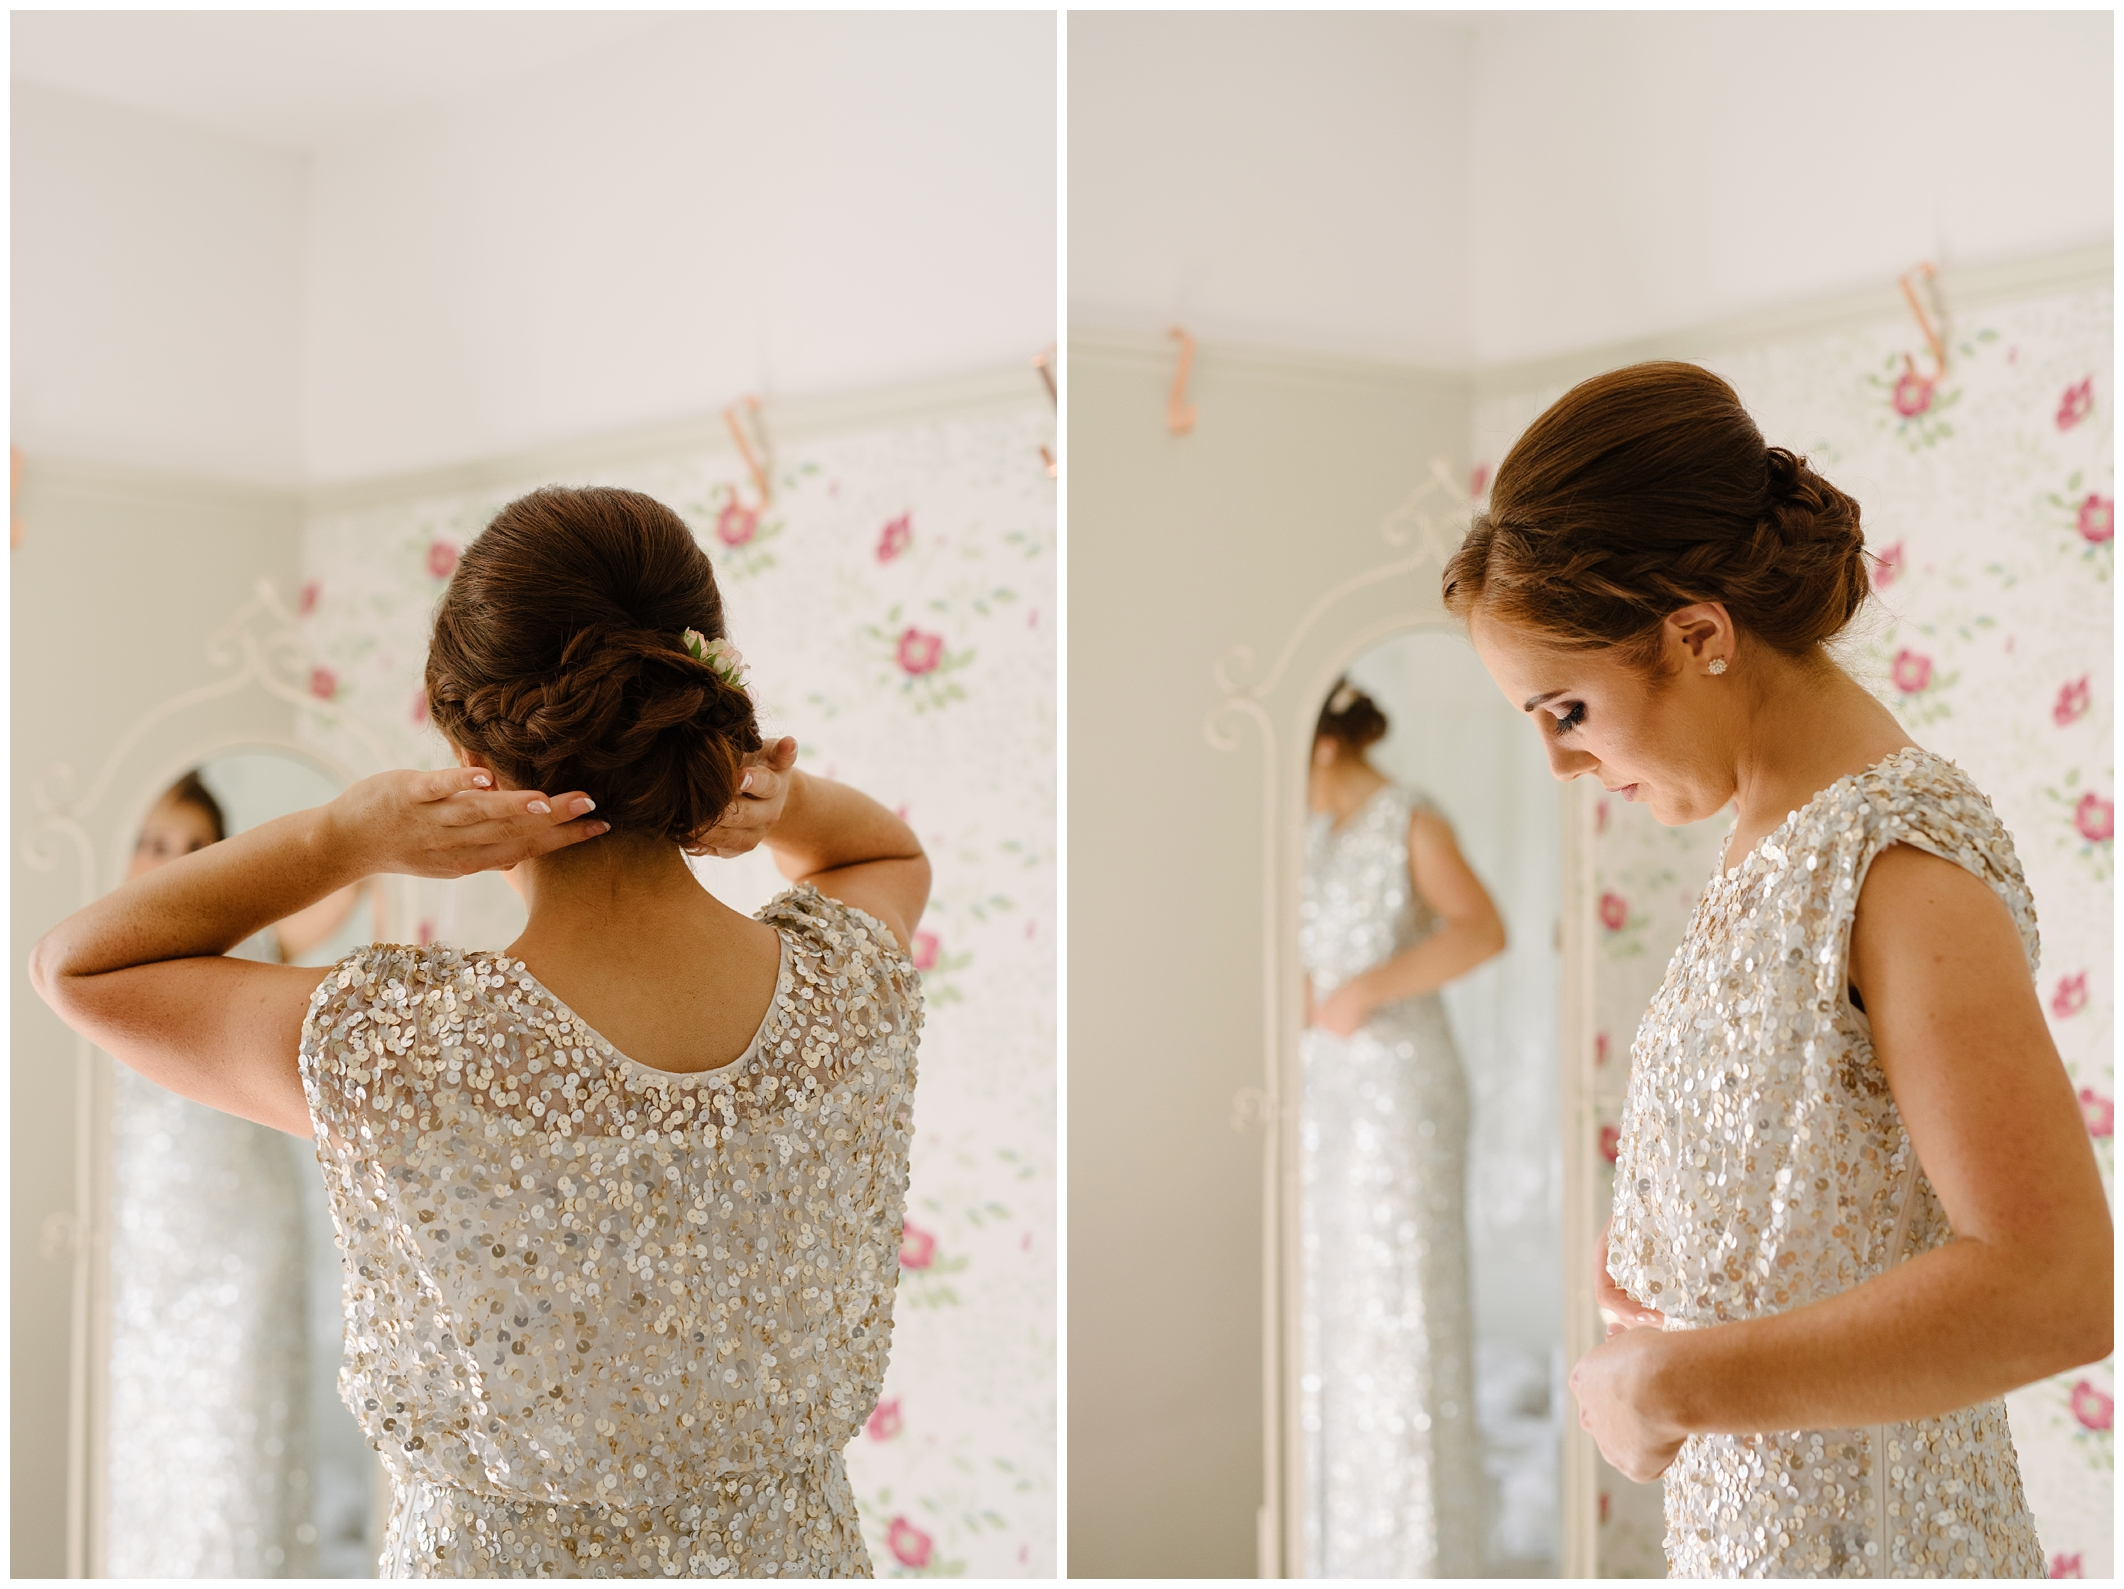 sinead_emmet_farnham_estate_wedding_jude_browne_photography_0033.jpg